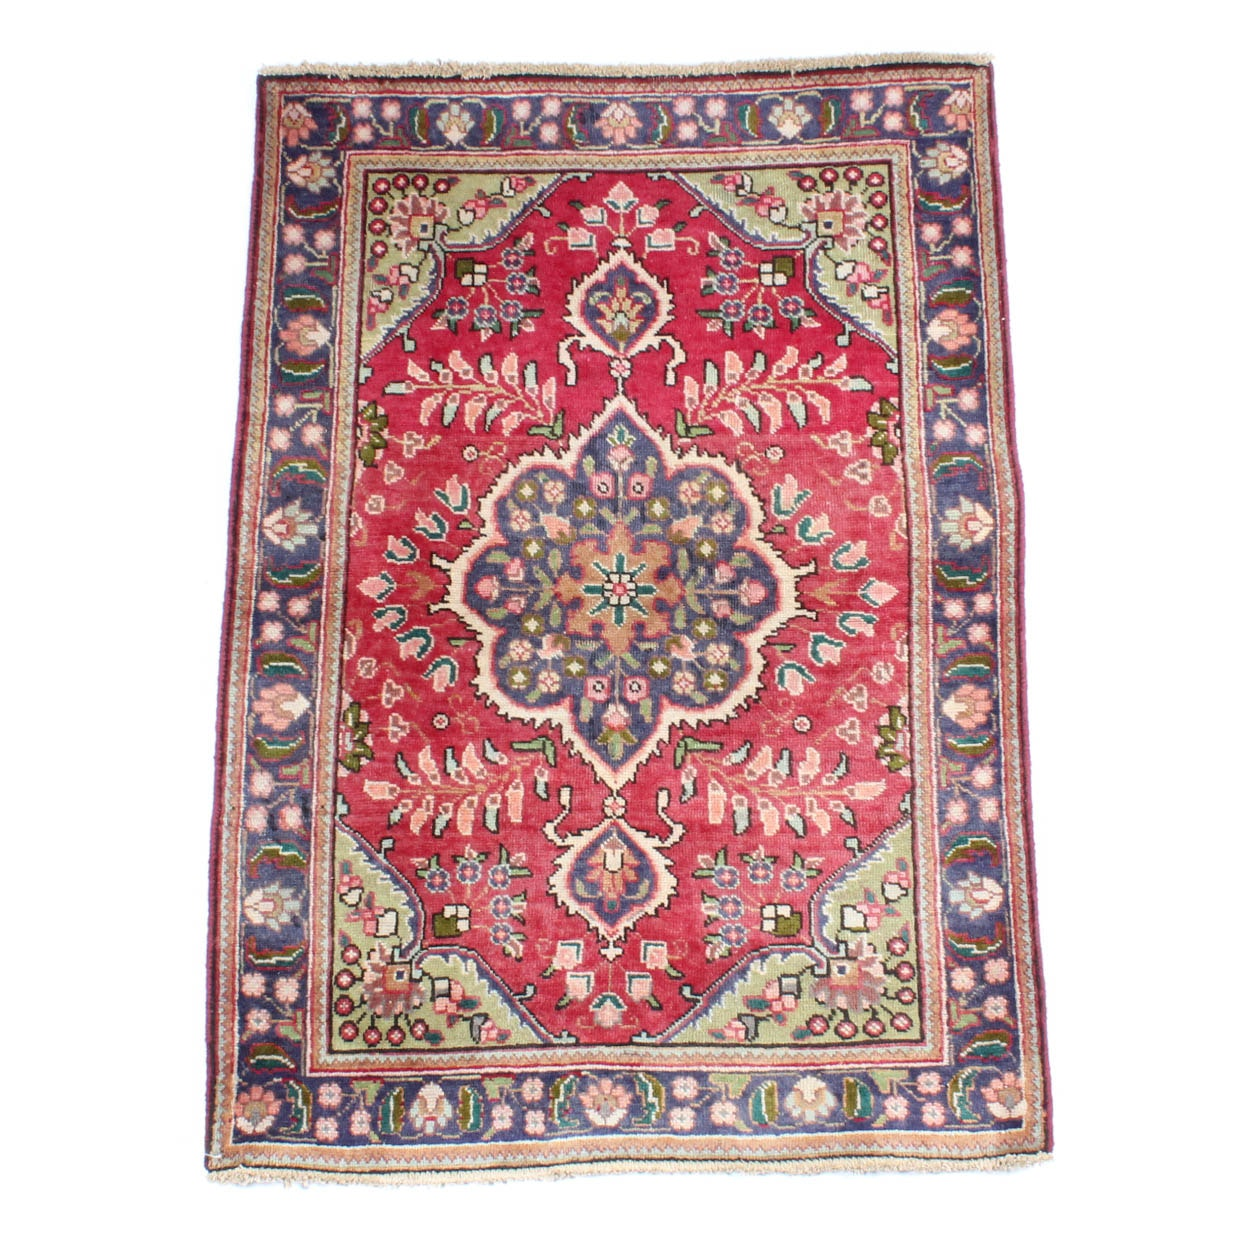 3' x 5' Vintage Hand-Knotted Persian Tabriz Accent Rug